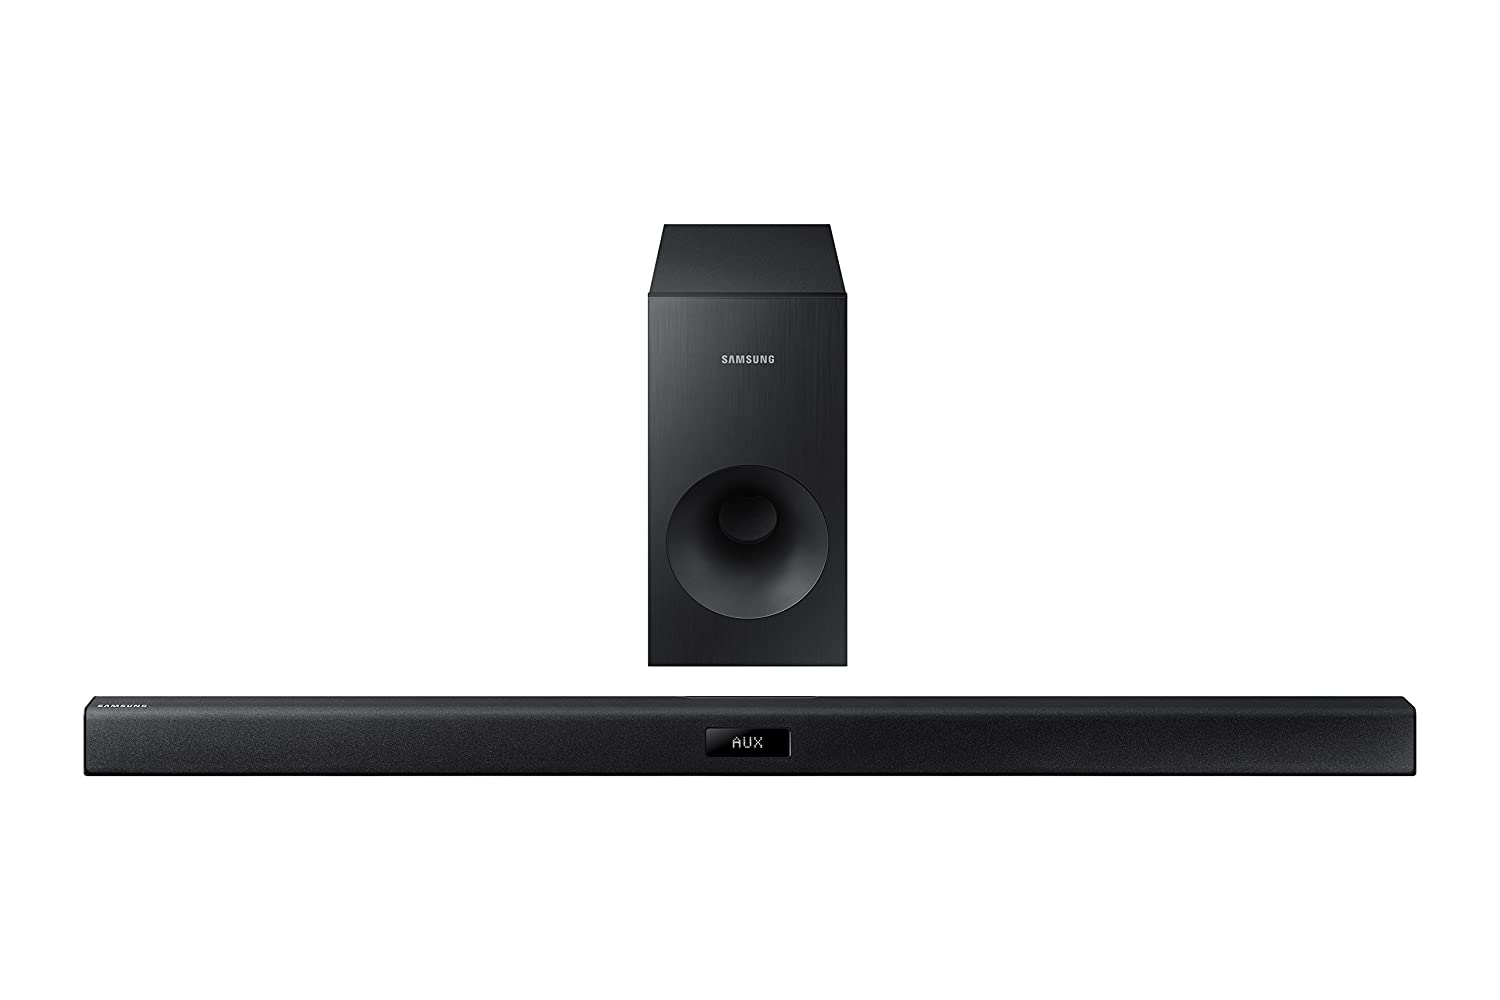 Best Sound Bars 2020.Top 10 Best Audio Sound Bar Speakers Reviews 2019 2020 On